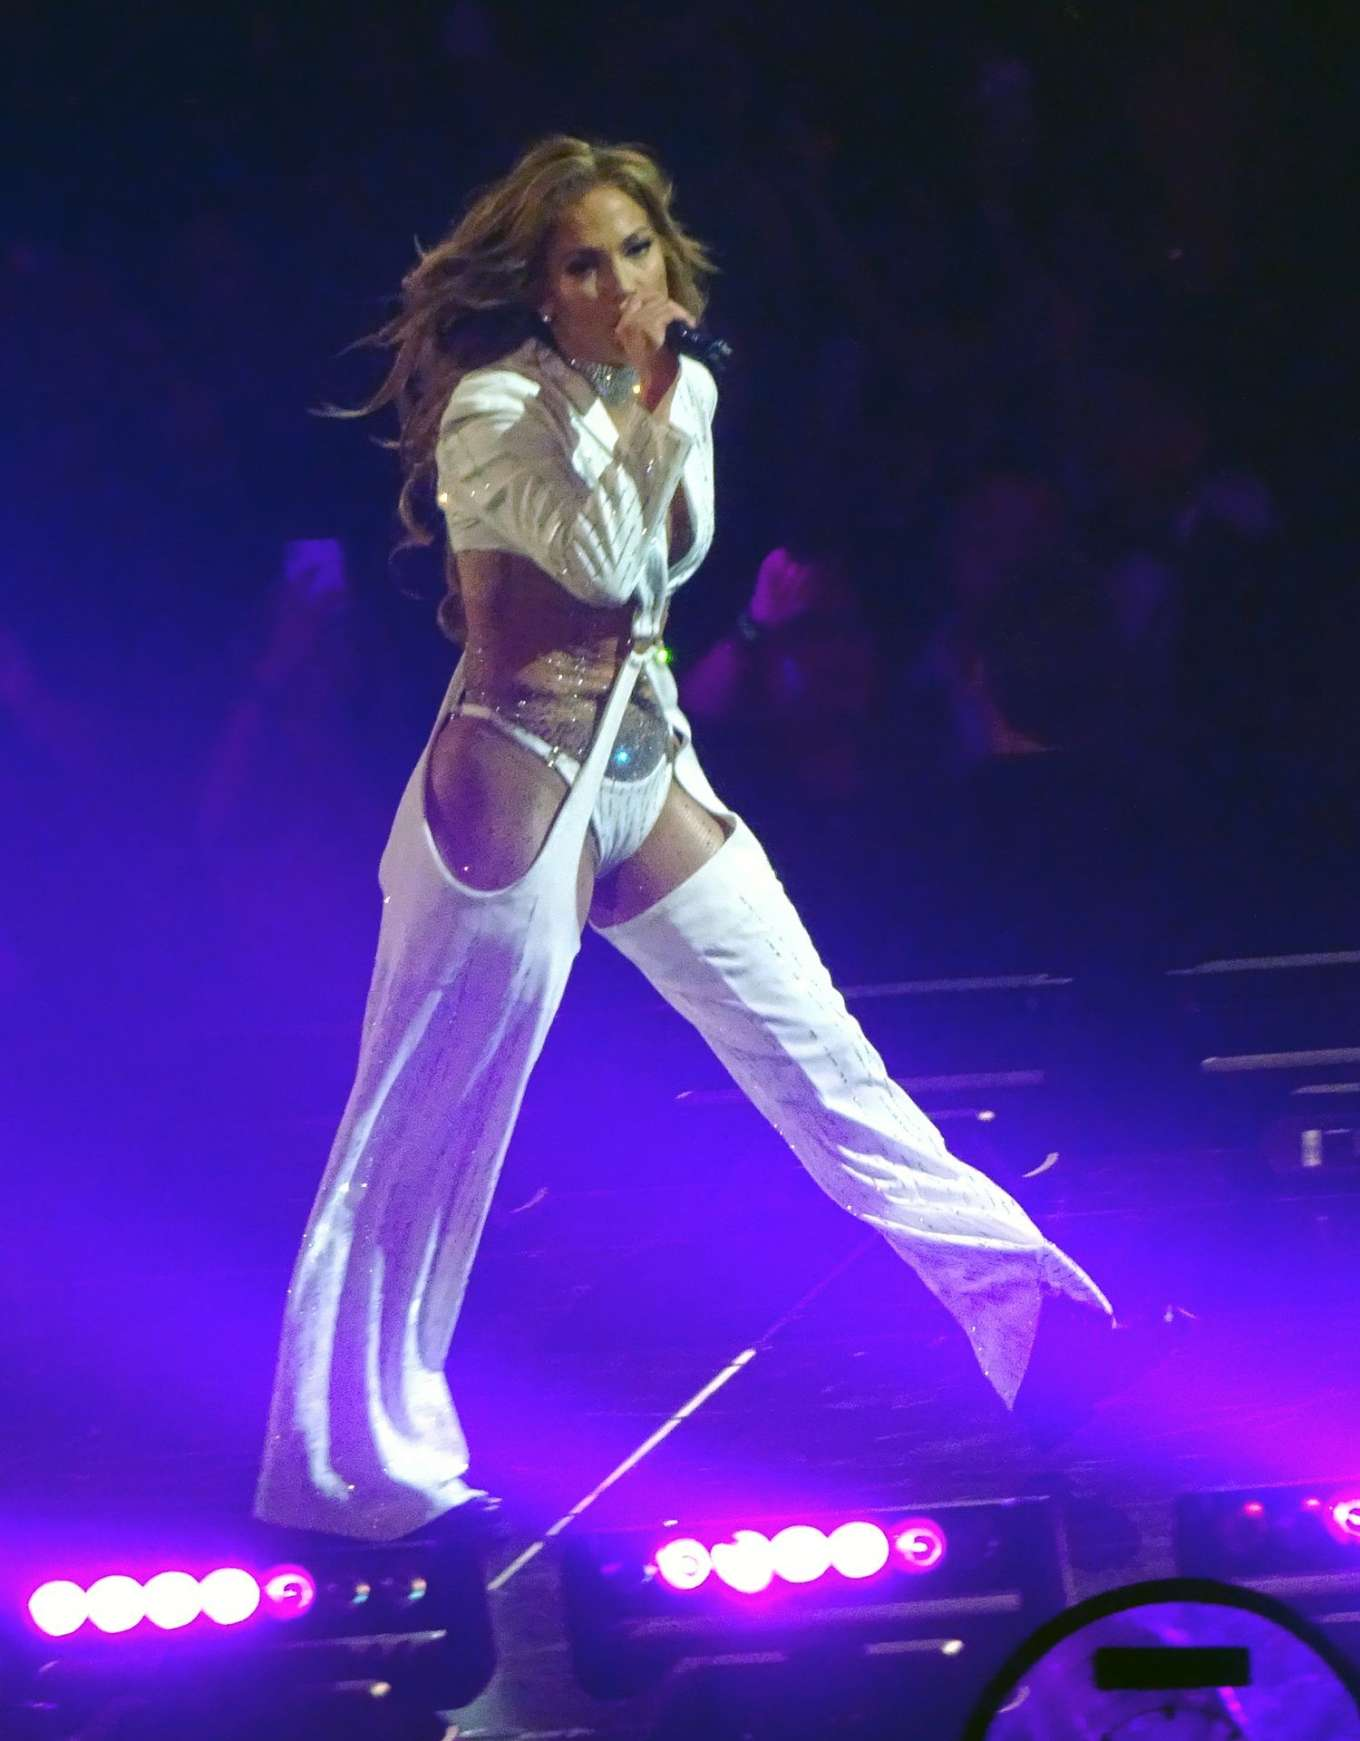 Jennifer Lopez - 'Its MY Party' opening night inside the Forum in Los Angeles